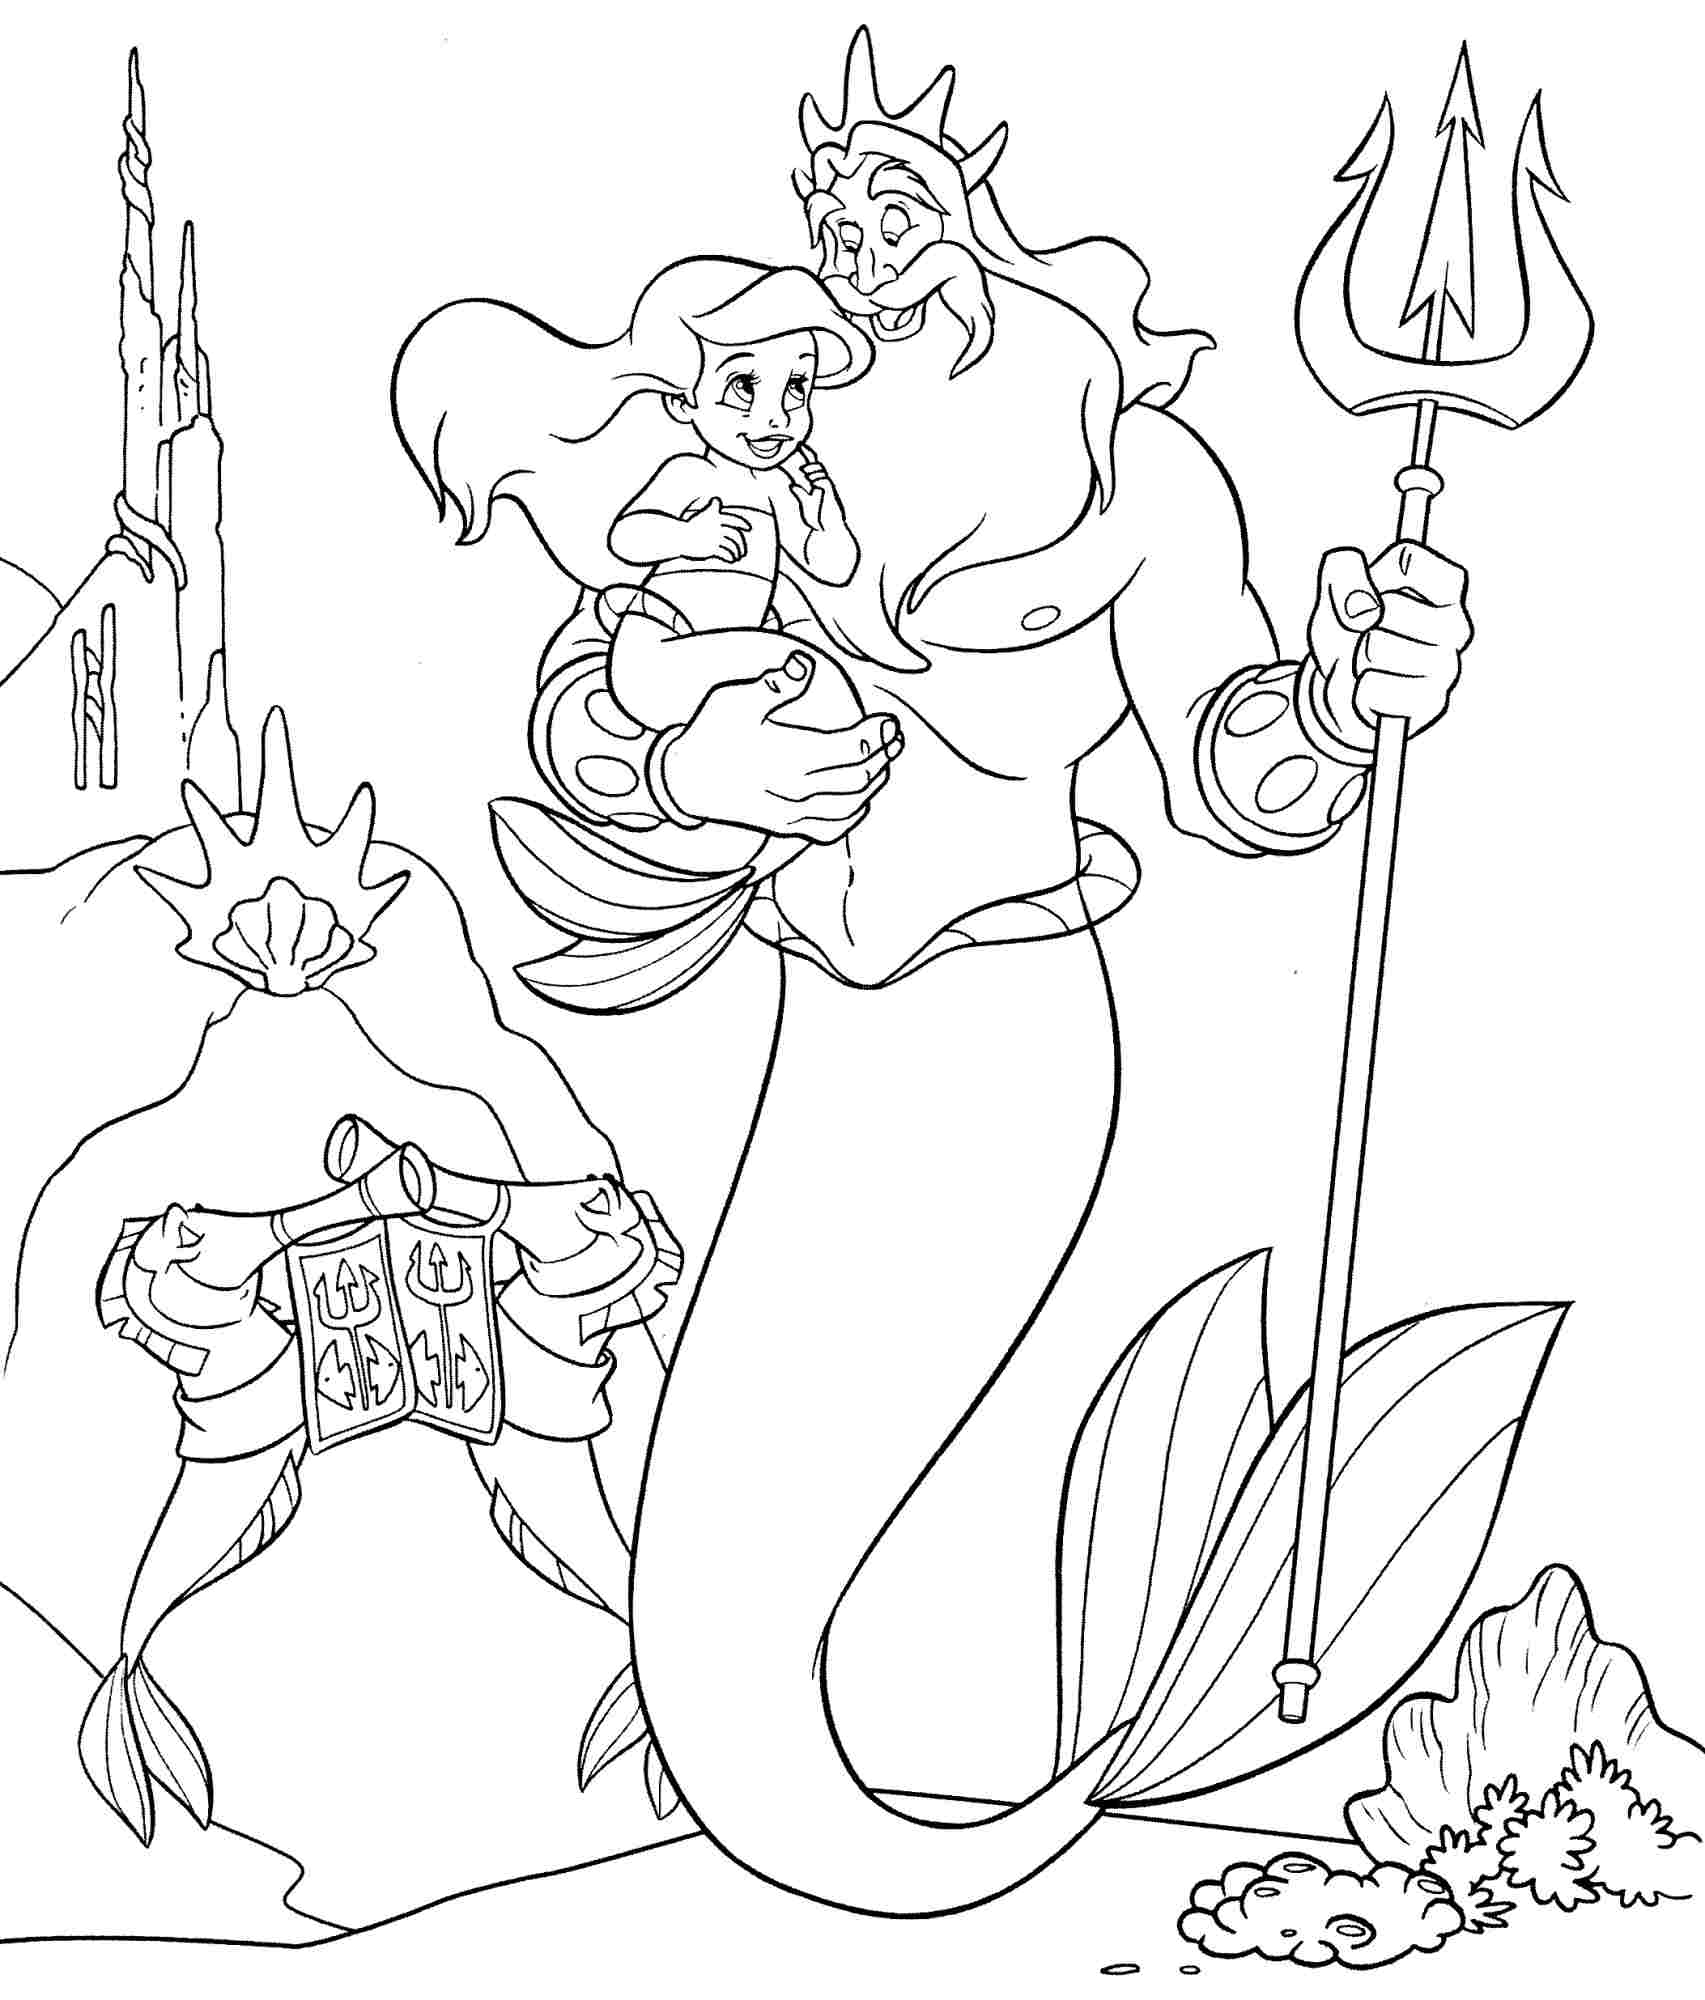 King Triton and daughter Coloring Page